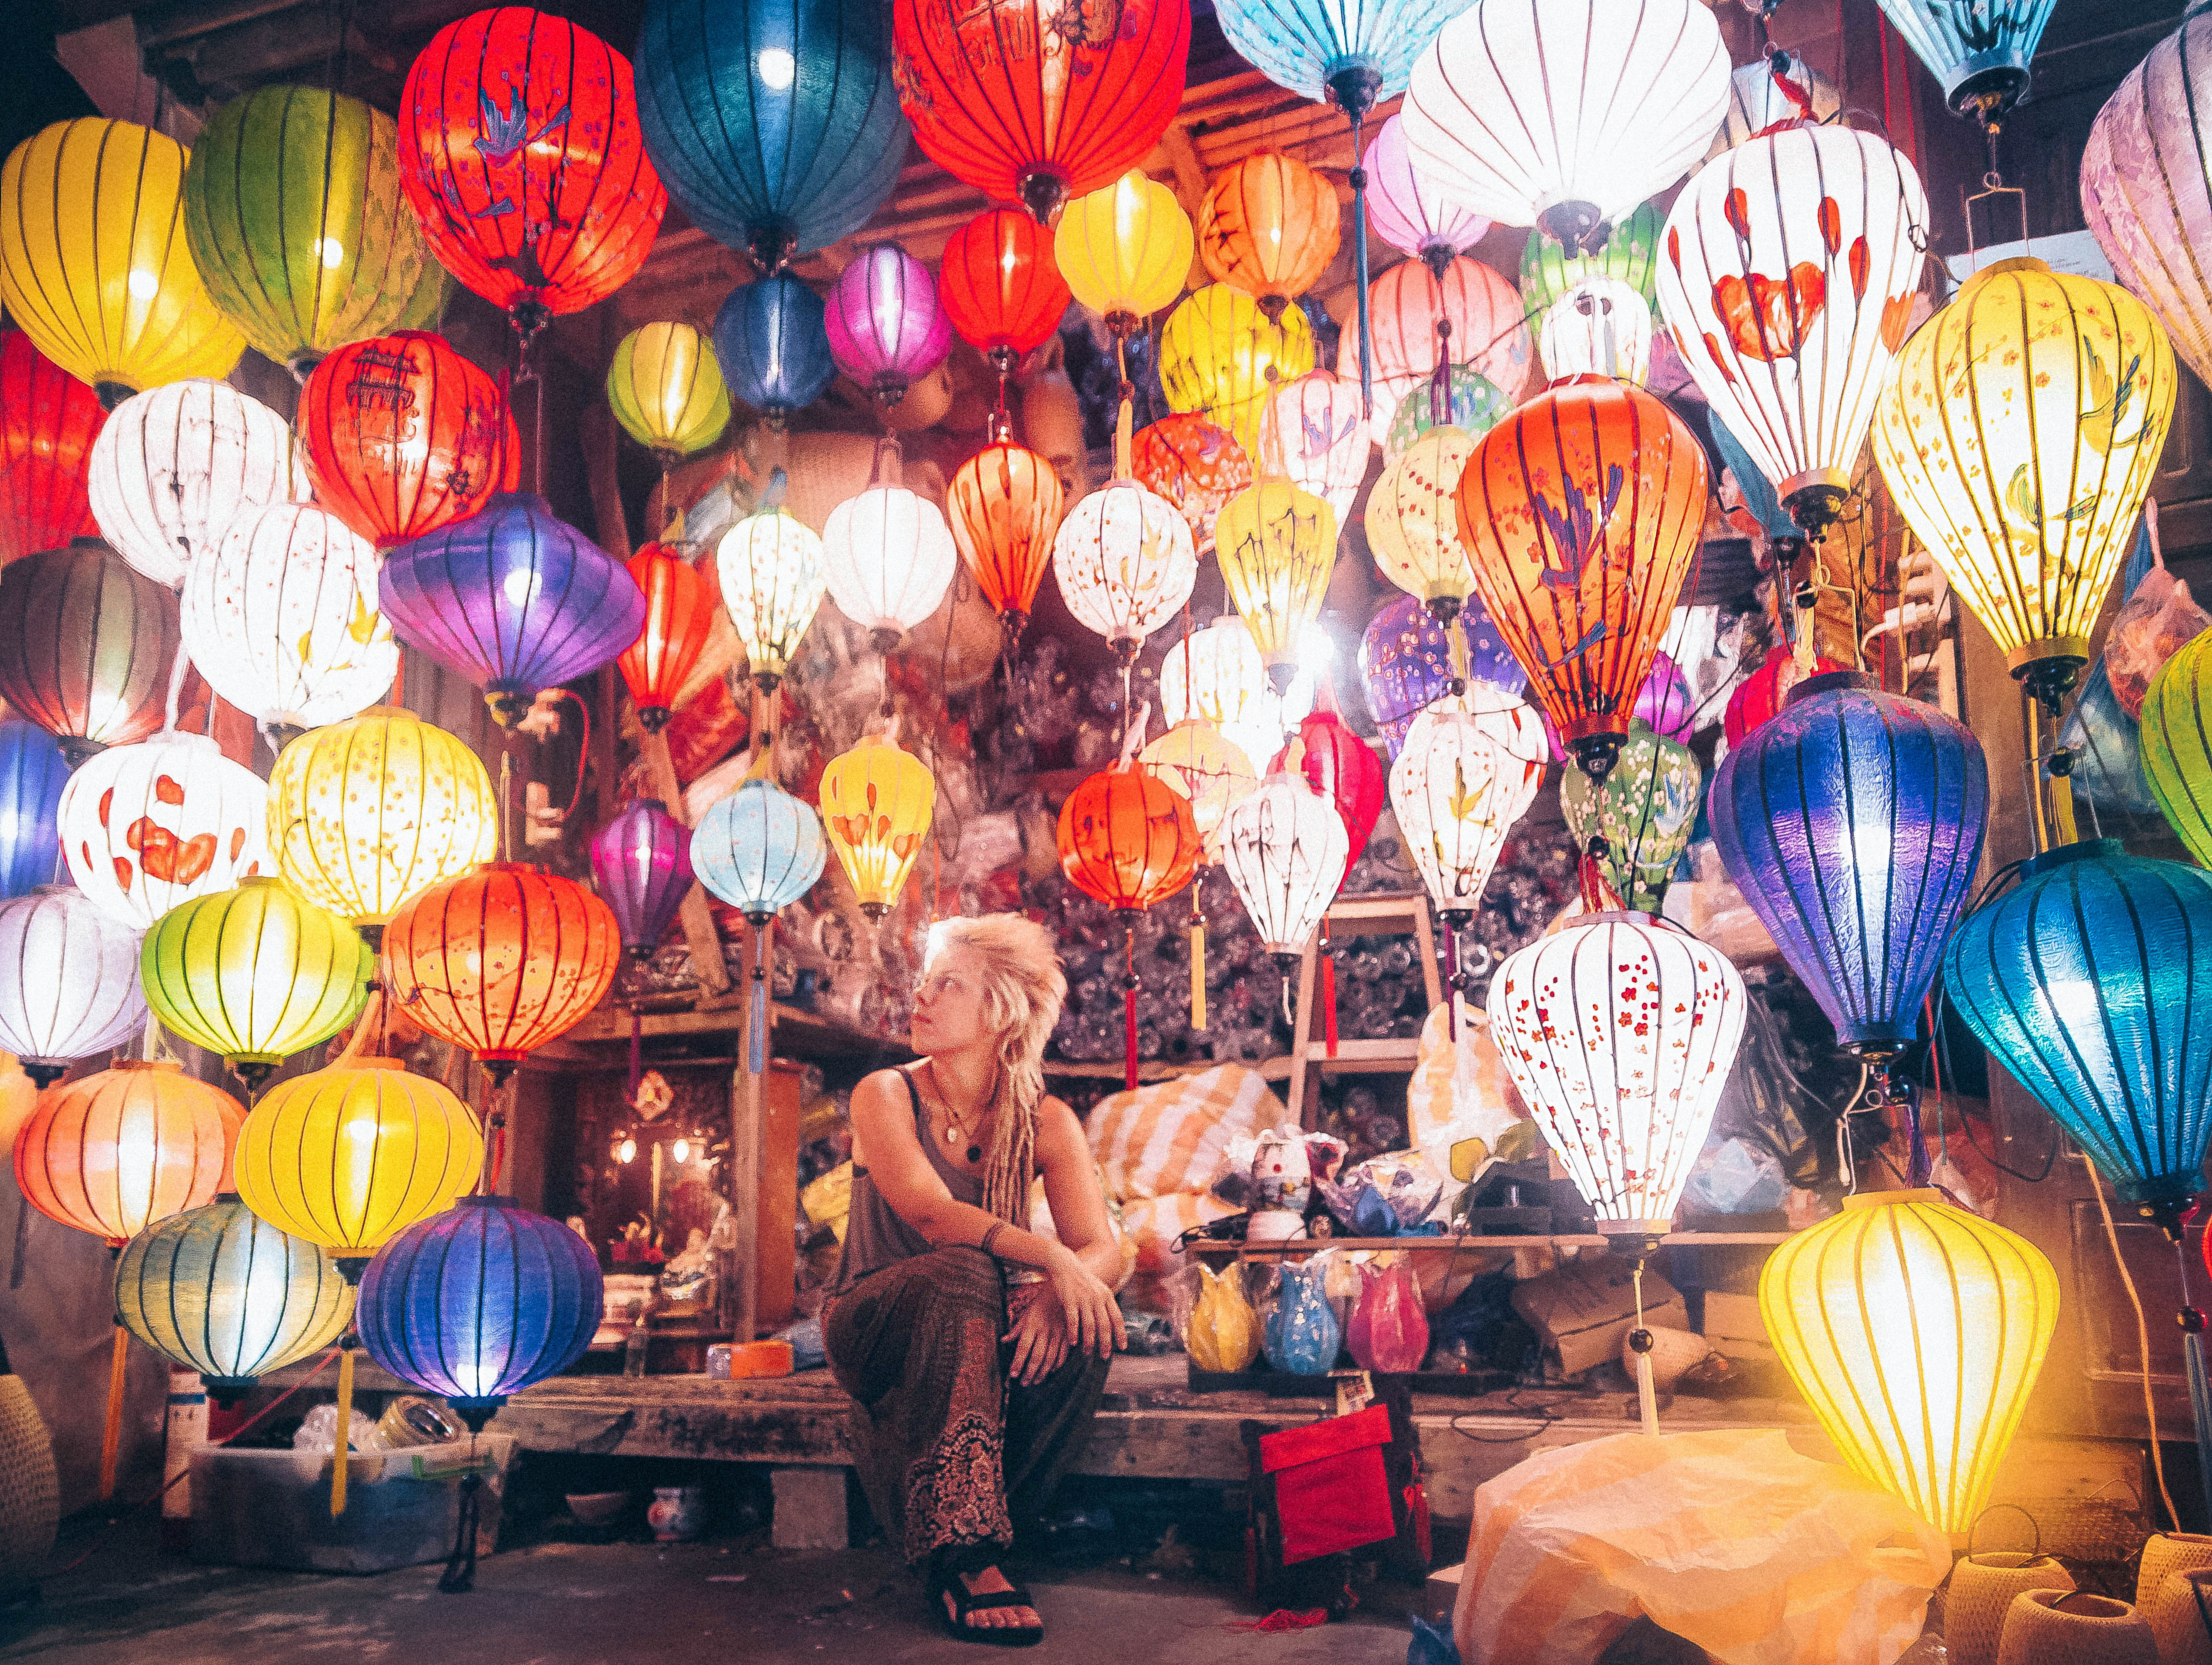 hoi an vietnam lantern city beautiful lights warm ambient atmosphere south east asia